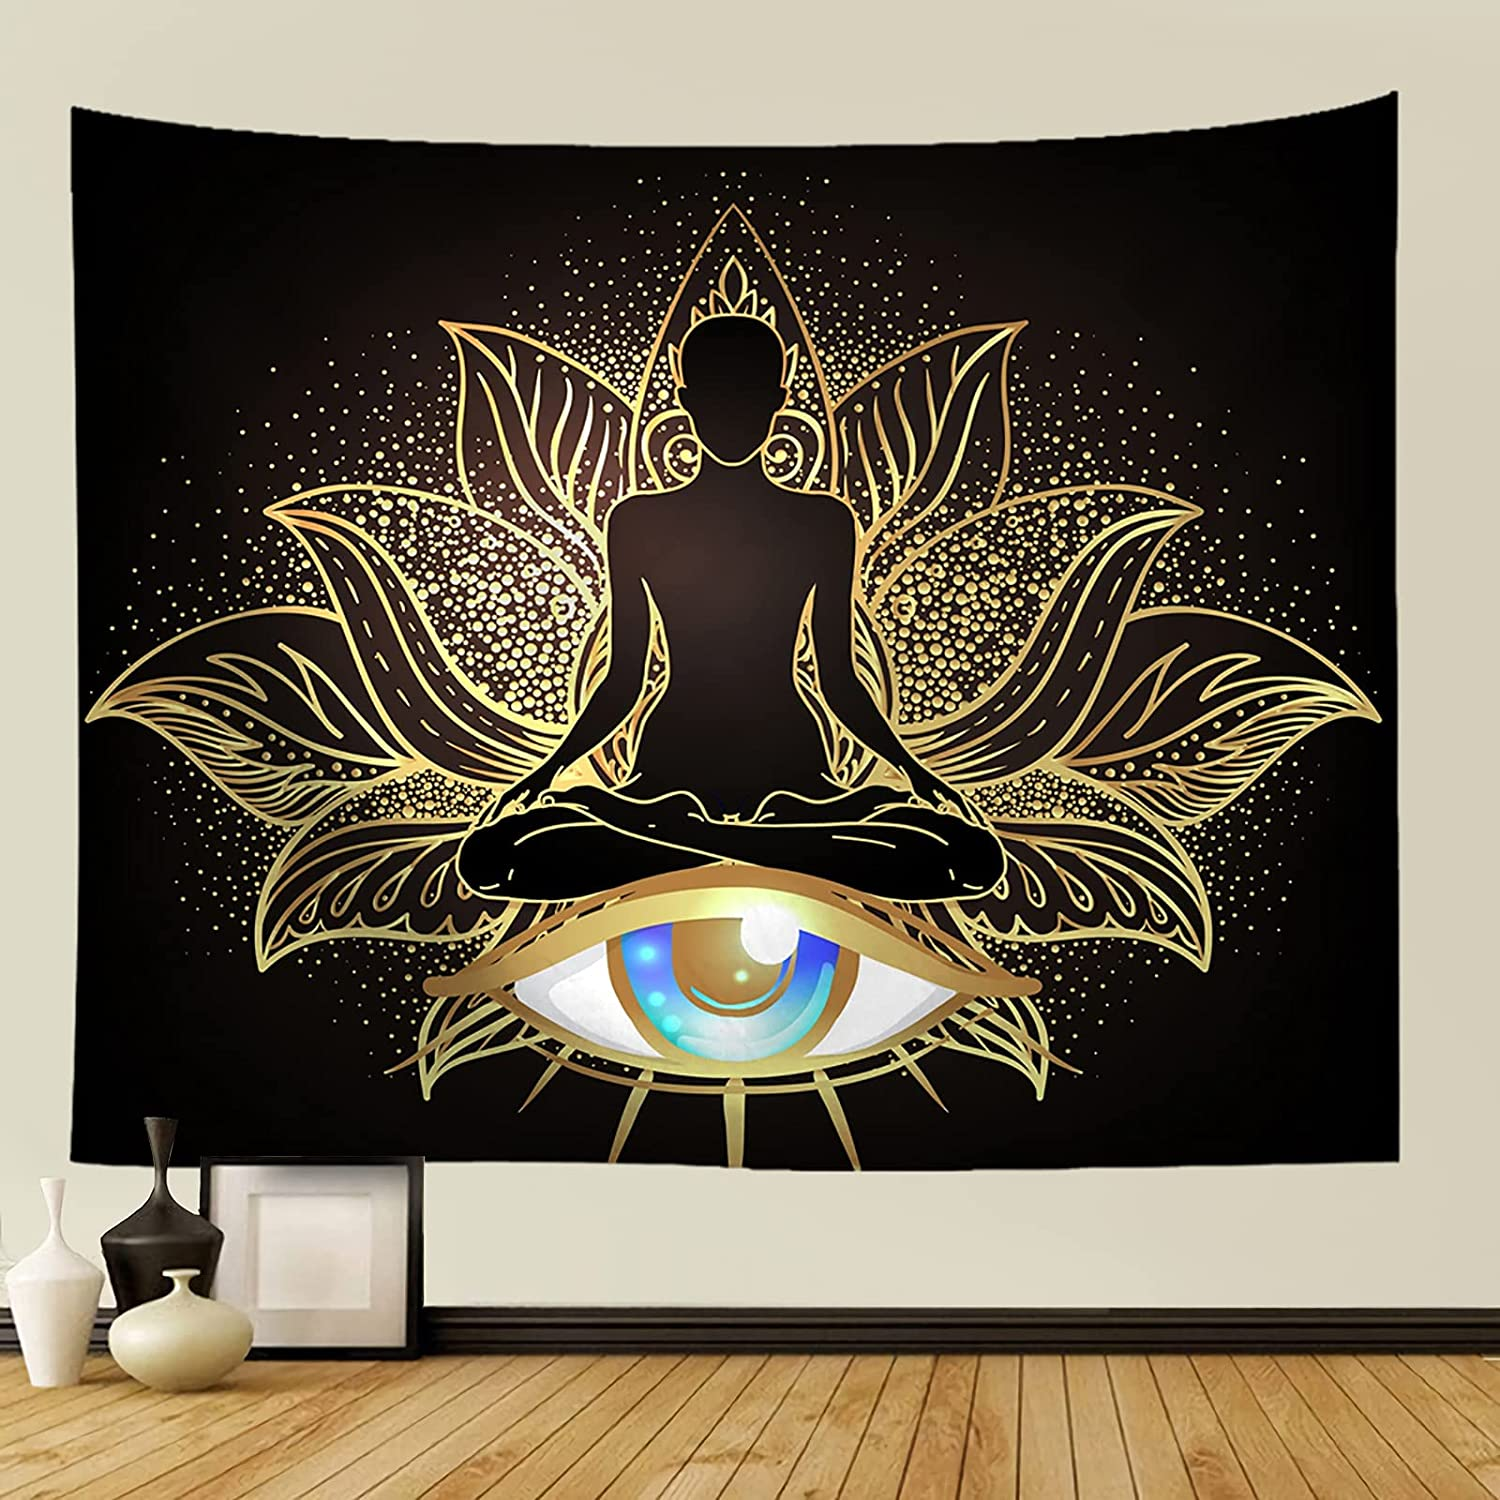 Yeacun Yoga Meditation Tapestry Wall Hanging, Golden Spiritual Tapestry and Evil Eye Wall Decor, Colorful Mandala Lotus Evil Eye Tapestry Hamsa Hand Tapestries Decoration for Studio Room (80L x 60W inches)